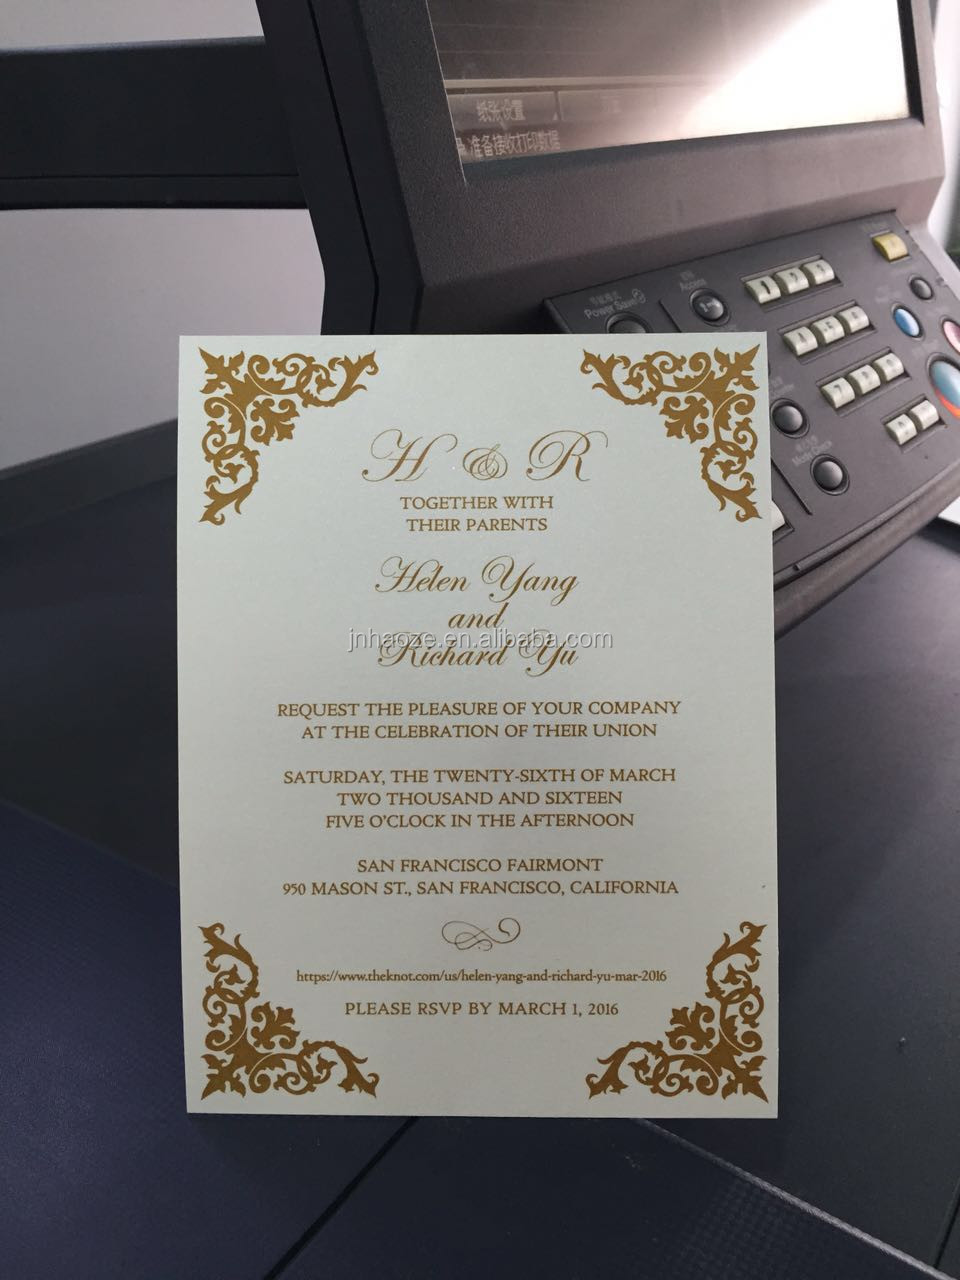 2018 New Design Wonderful Invitation Cards Wedding Invitations Can Be Custom Size Printing Buy Many Kinds Of Laser Cut Invitation Cards For Your